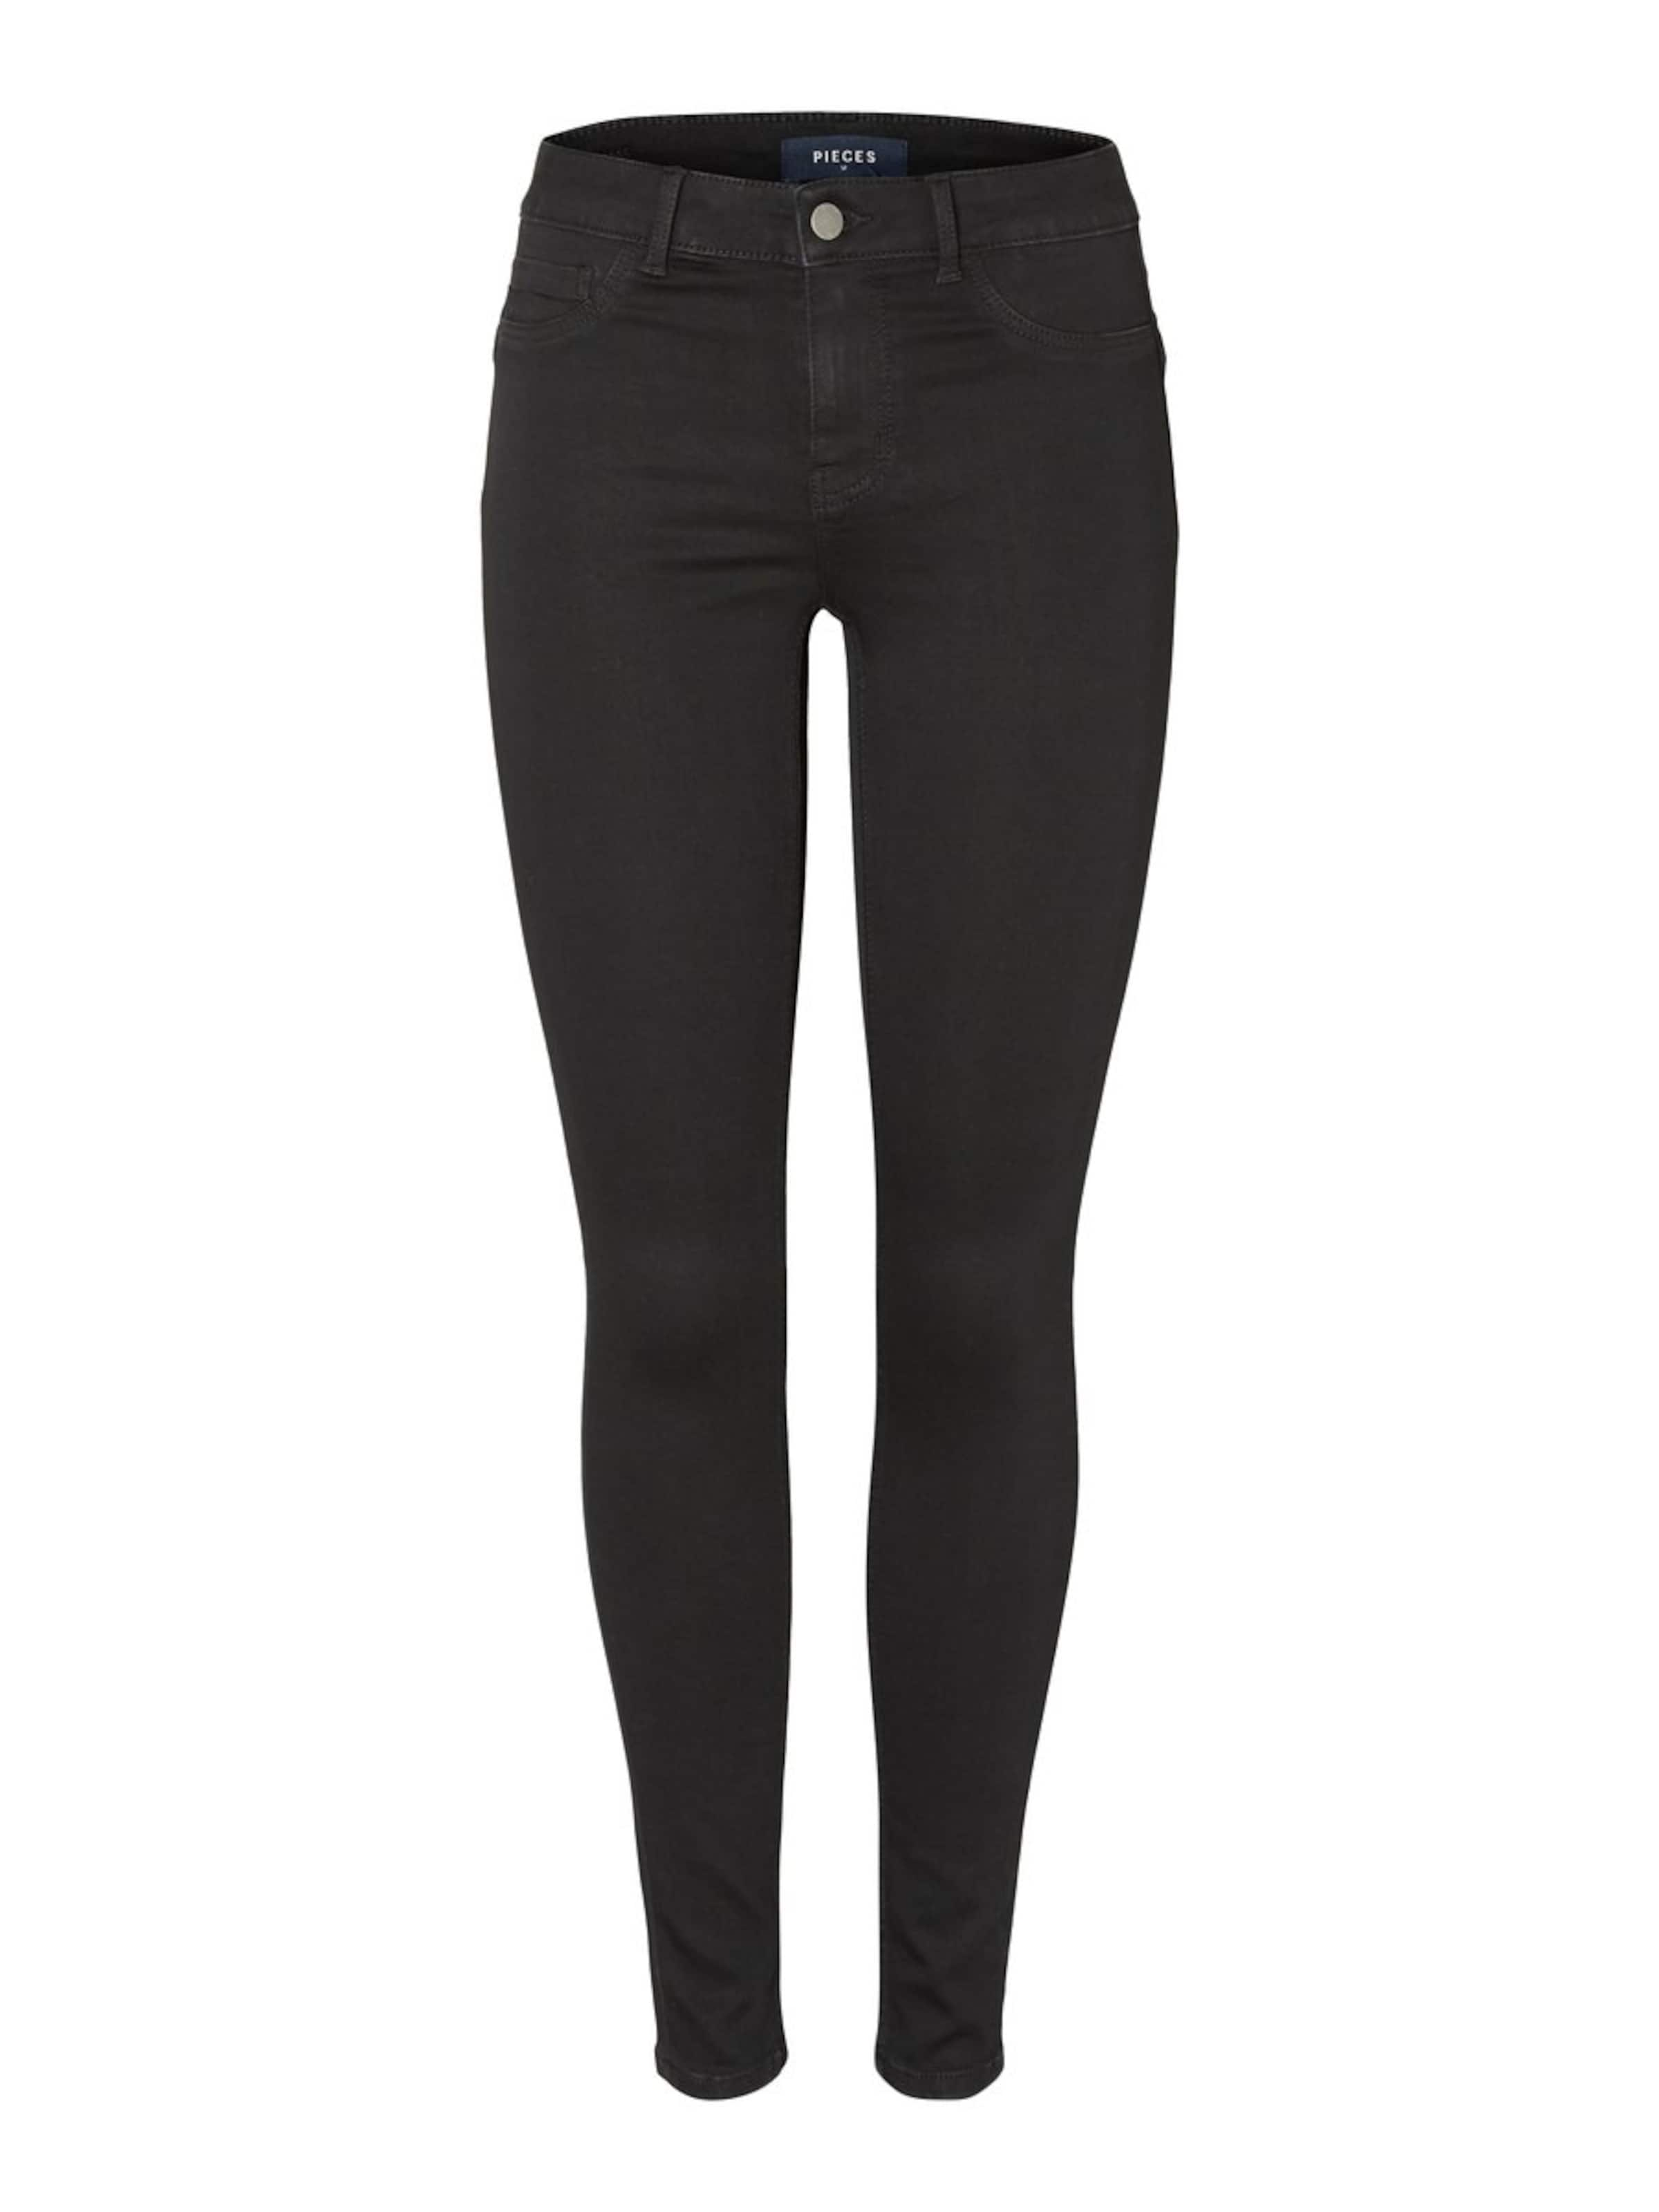 In Pieces In Pieces Denim Black Jeggings Jeggings 9WDH2IE